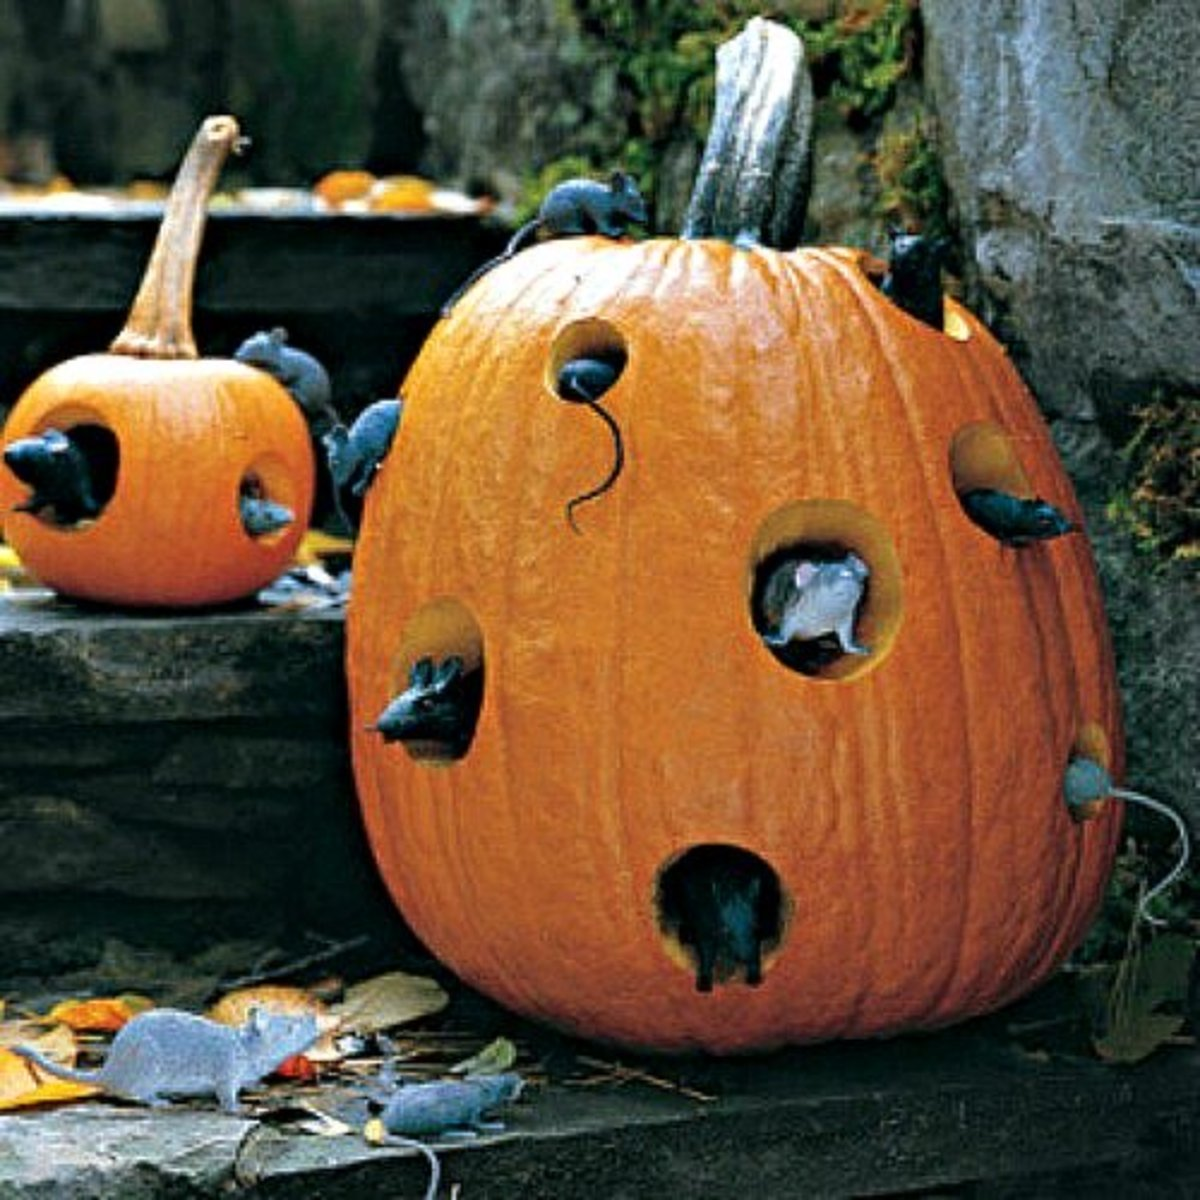 Halloween Outdoor Yard Decorations: 30 Creepy Outdoor DIY Halloween Crafts